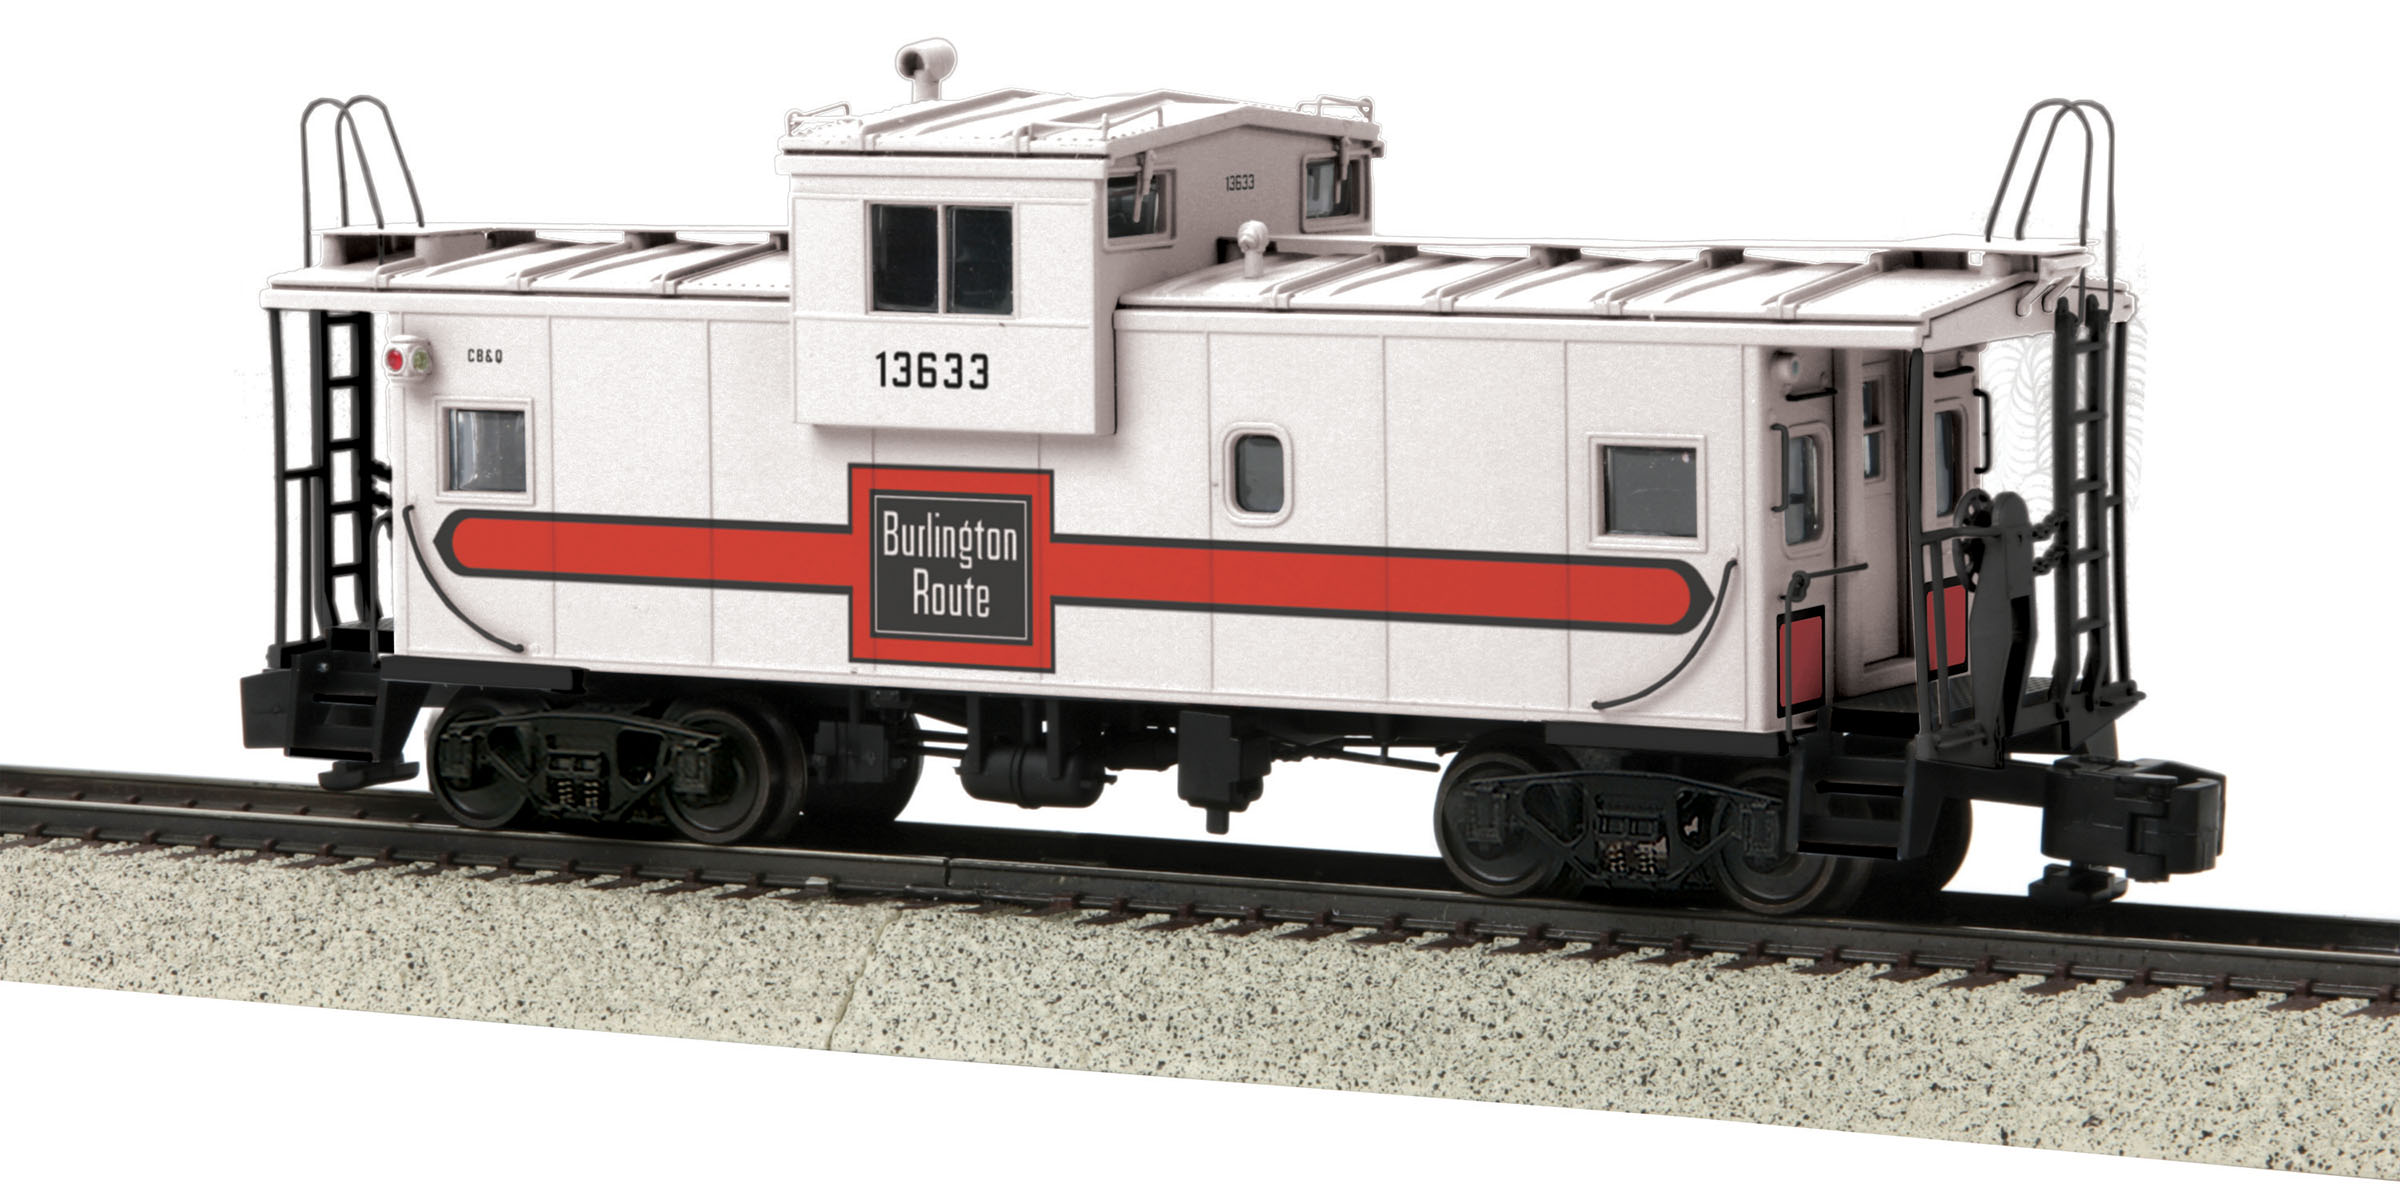 MTH 3577002 Burlington Extended Caboose Hi-Rail Wheels #13633